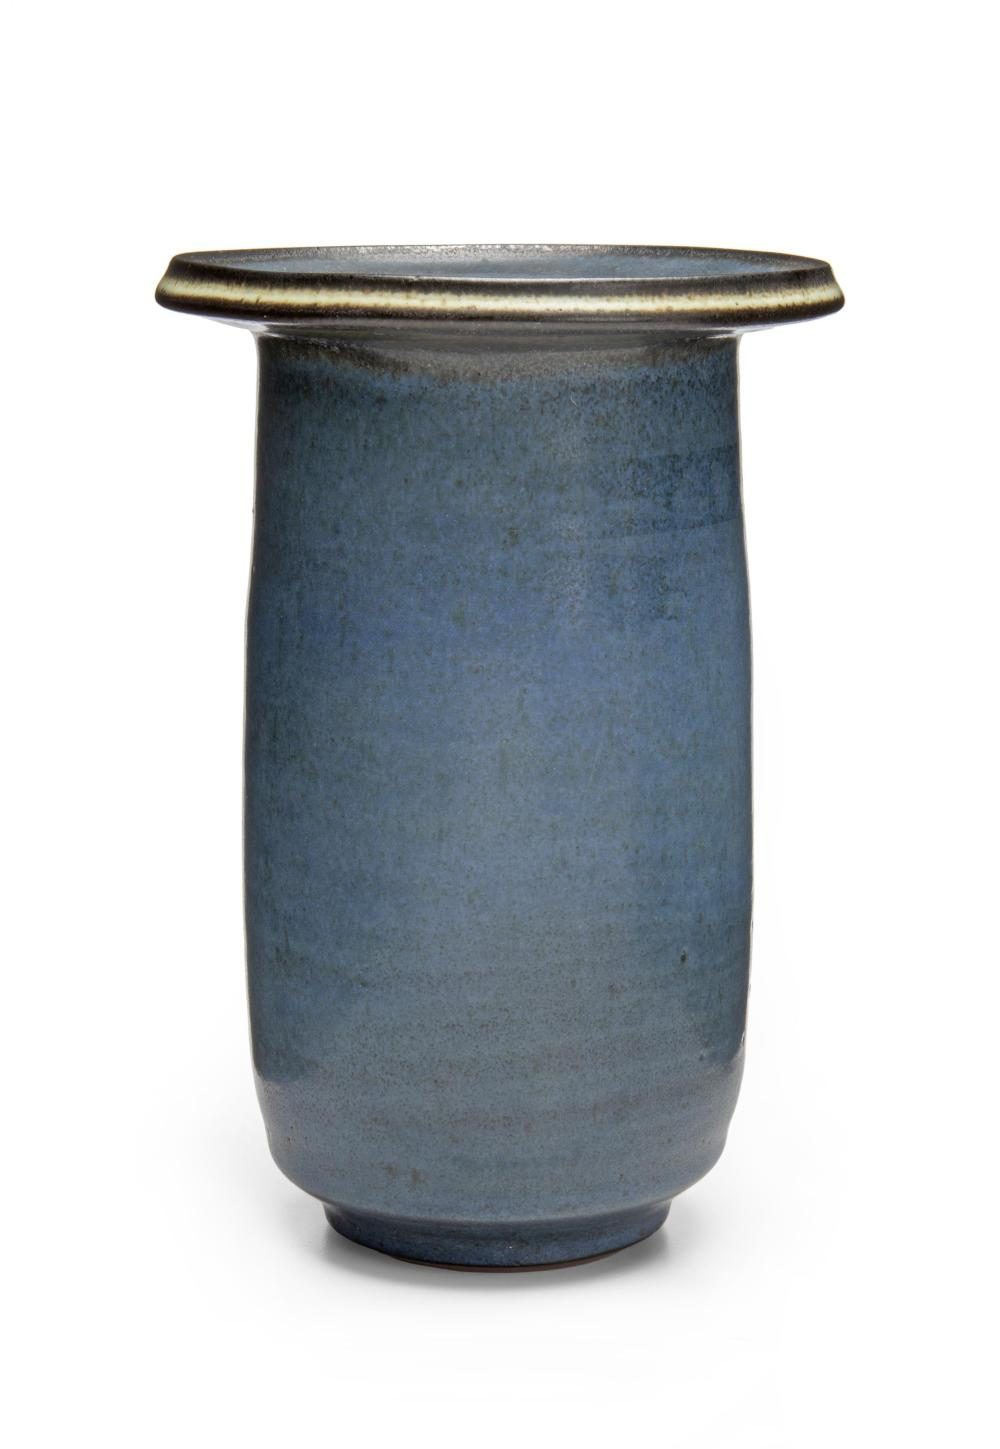 "Harrison McIntosh, (1914-2016, American), Tall cylindrical vase, Ceramic with blue engobe, 8"" H x 5.5"" Dia."